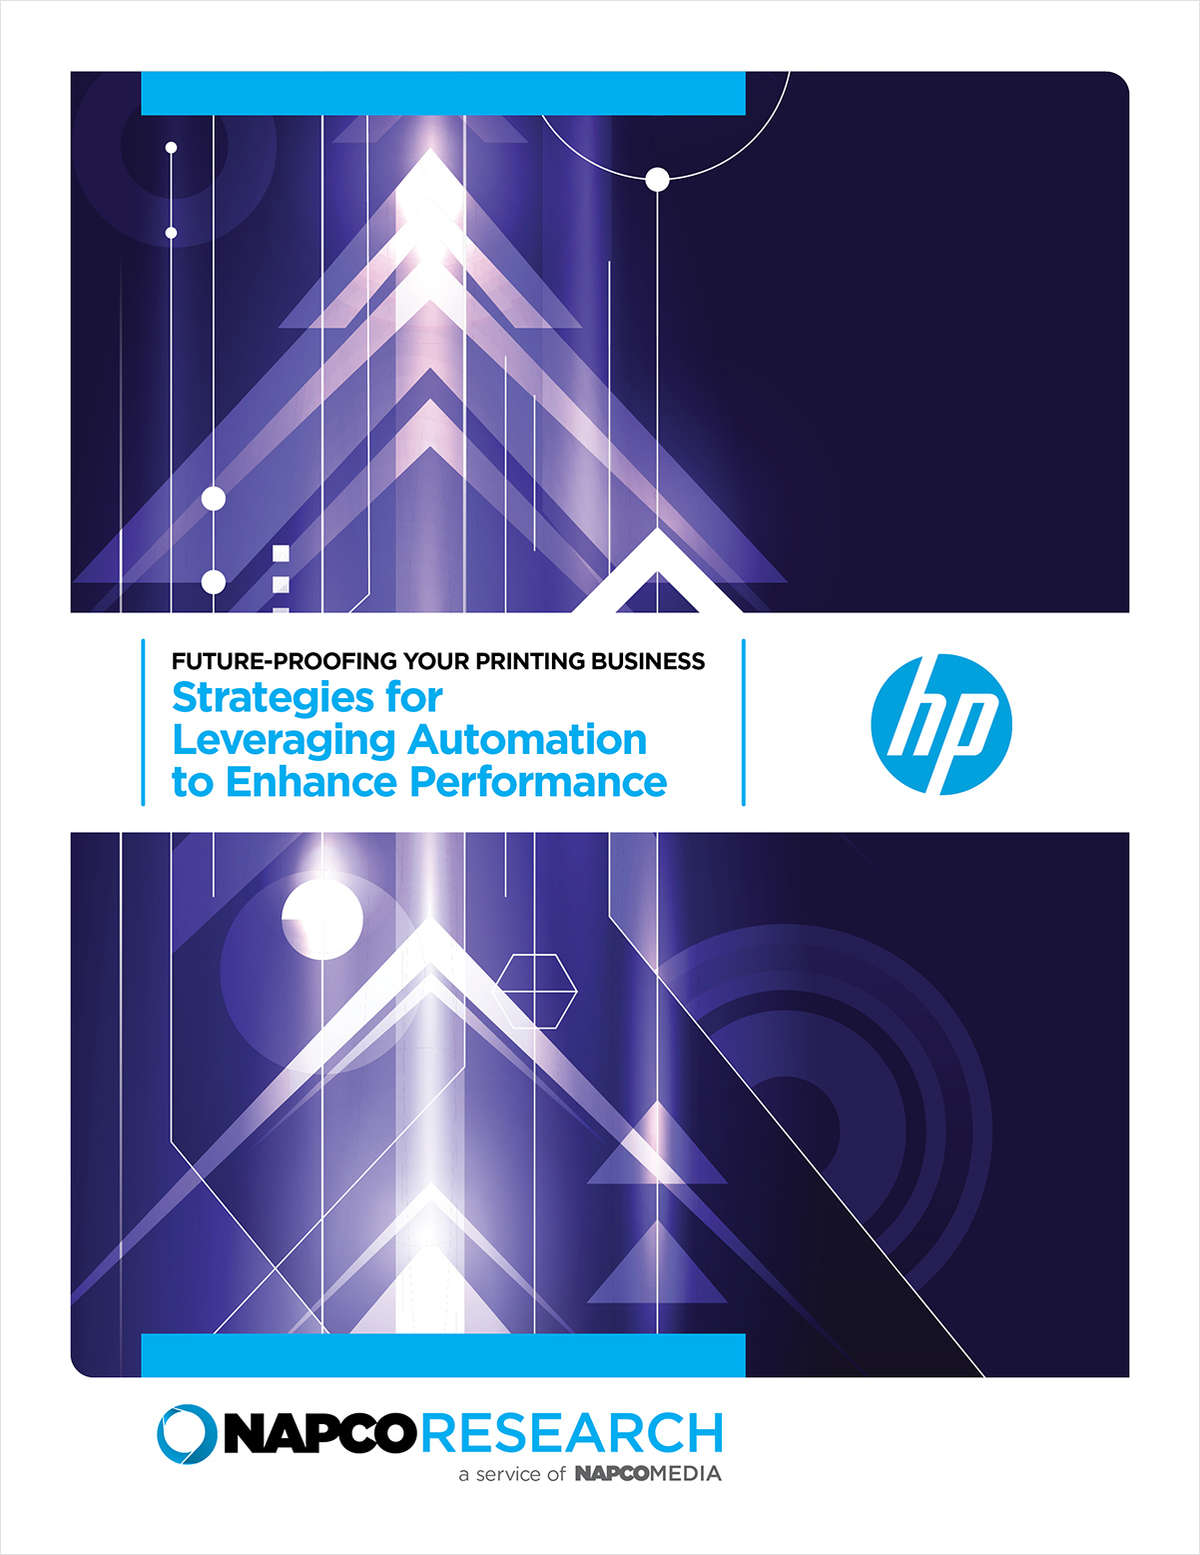 Strategies for Leveraging Automation to Enhance Performance